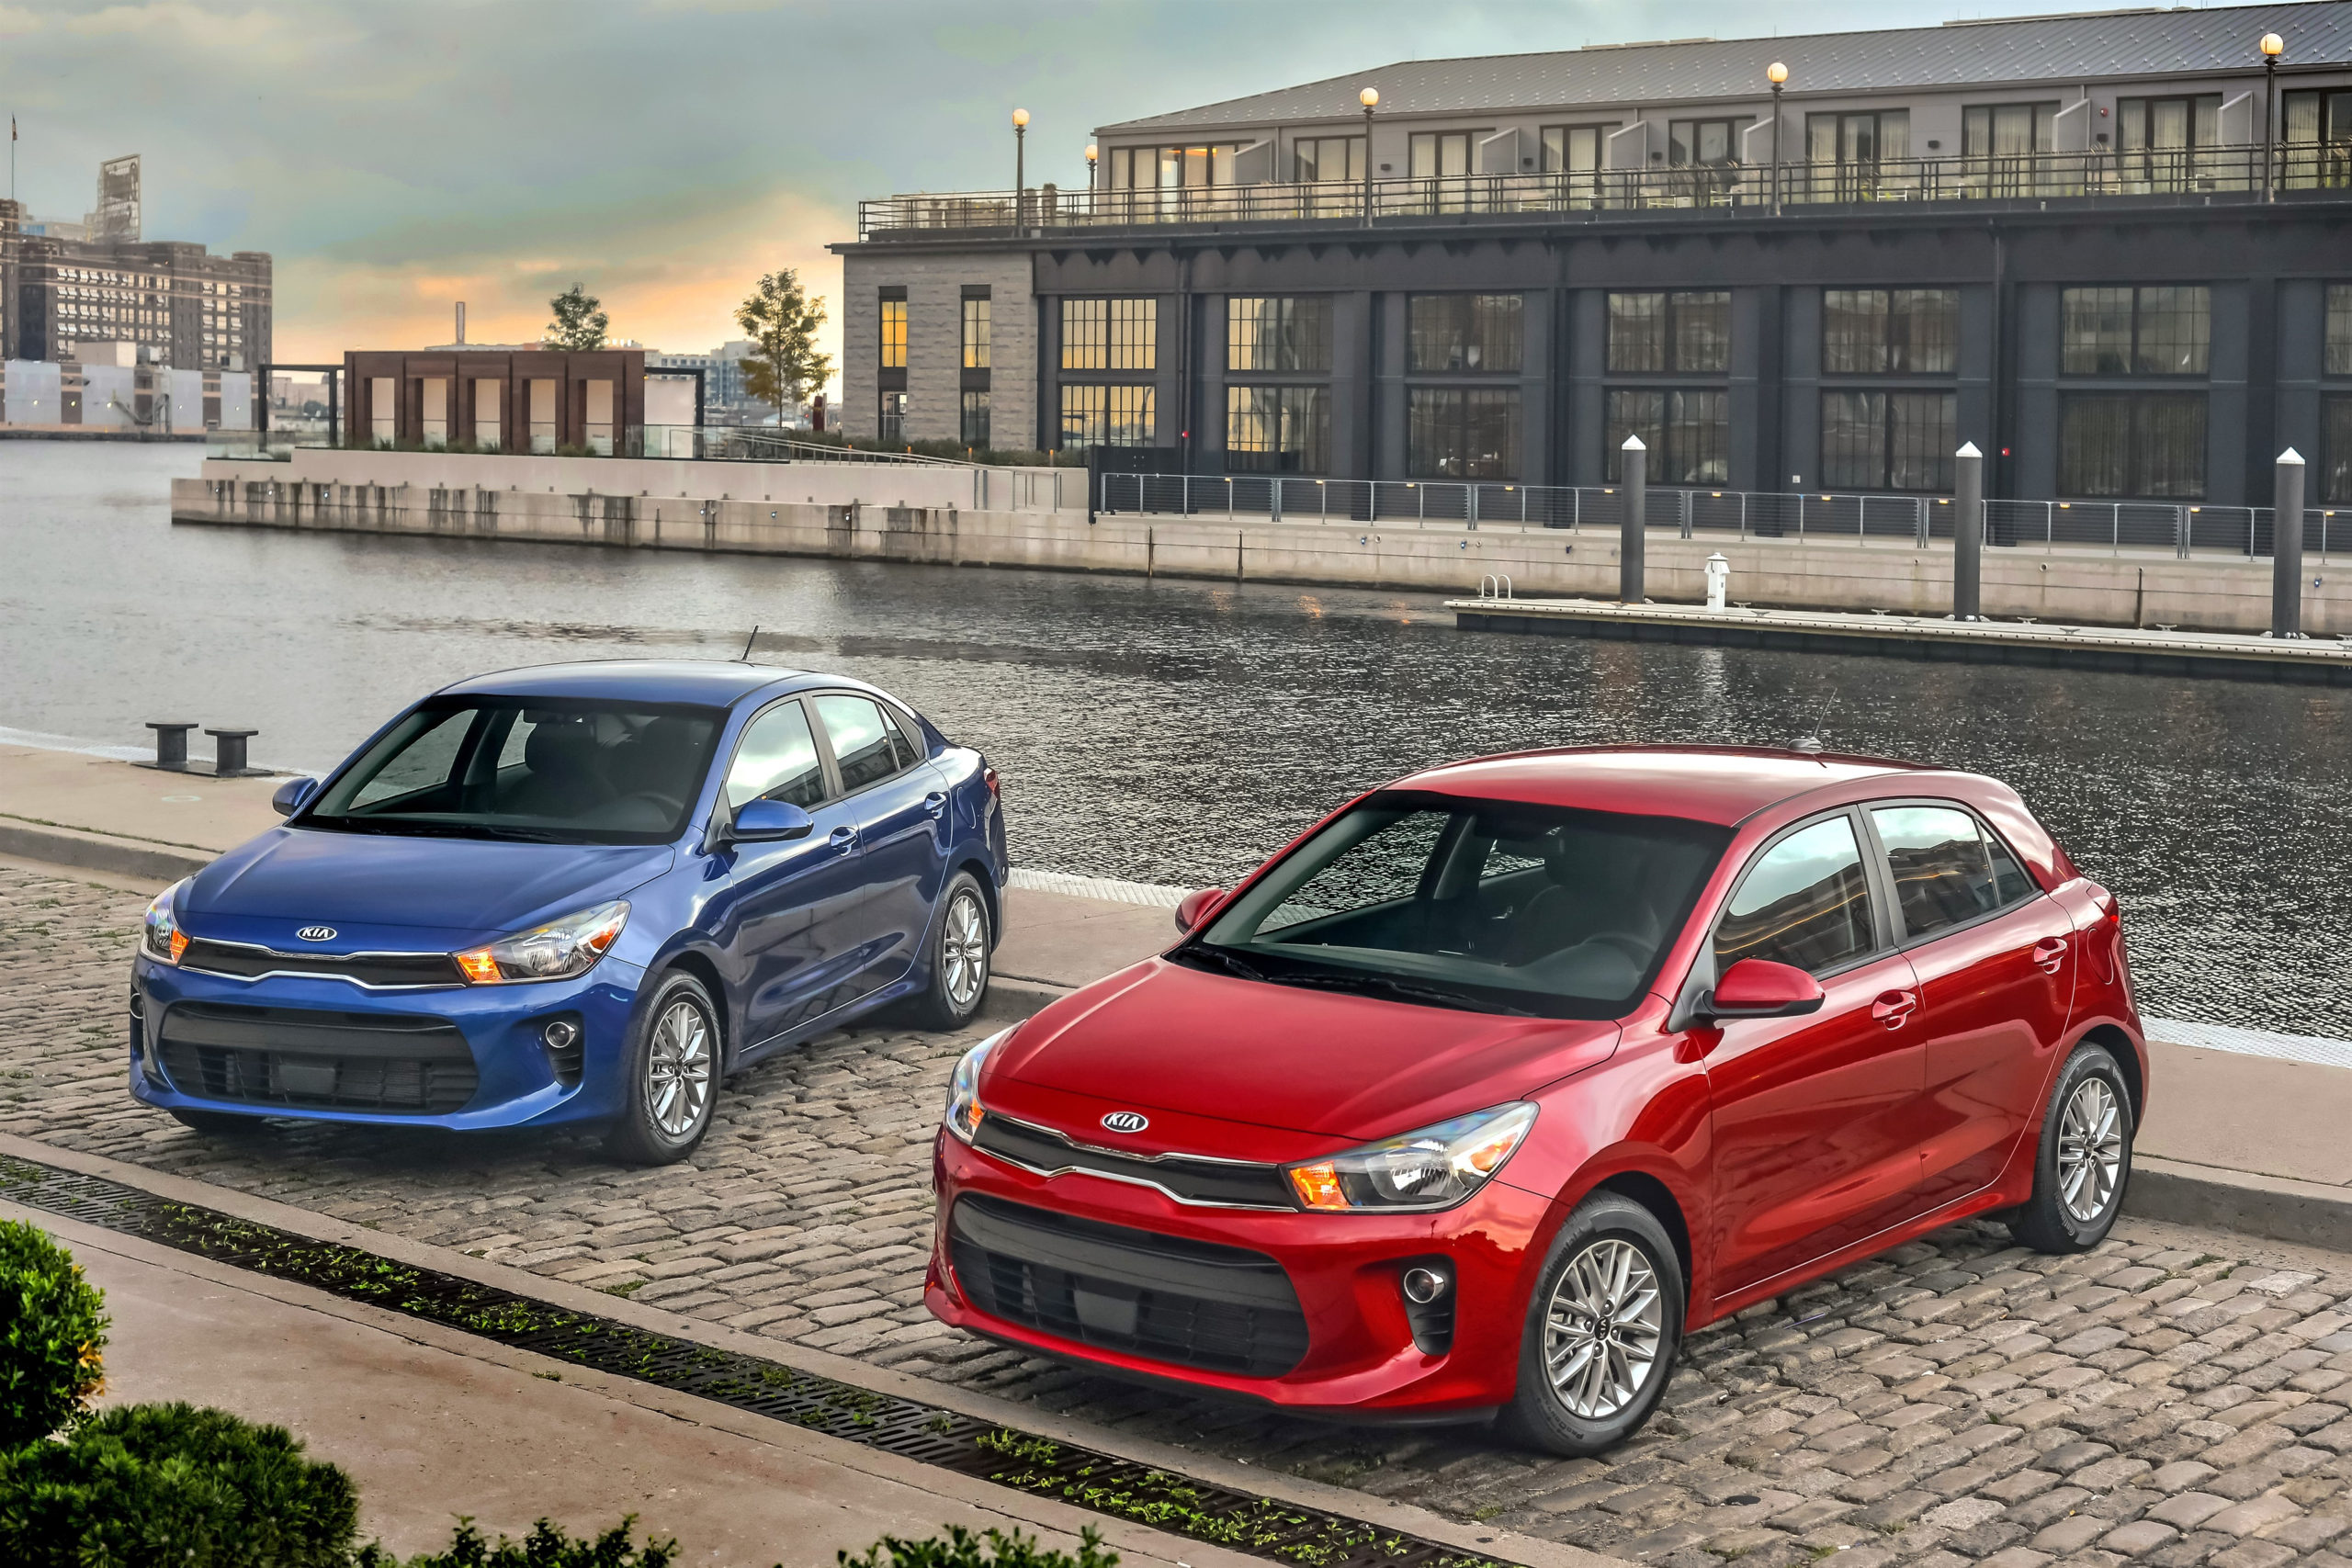 Kia's Product Line-Up Until 2022 - Korean Car Blog - 2022 Kia Rio Hatchback, Exterior Concept, Performance